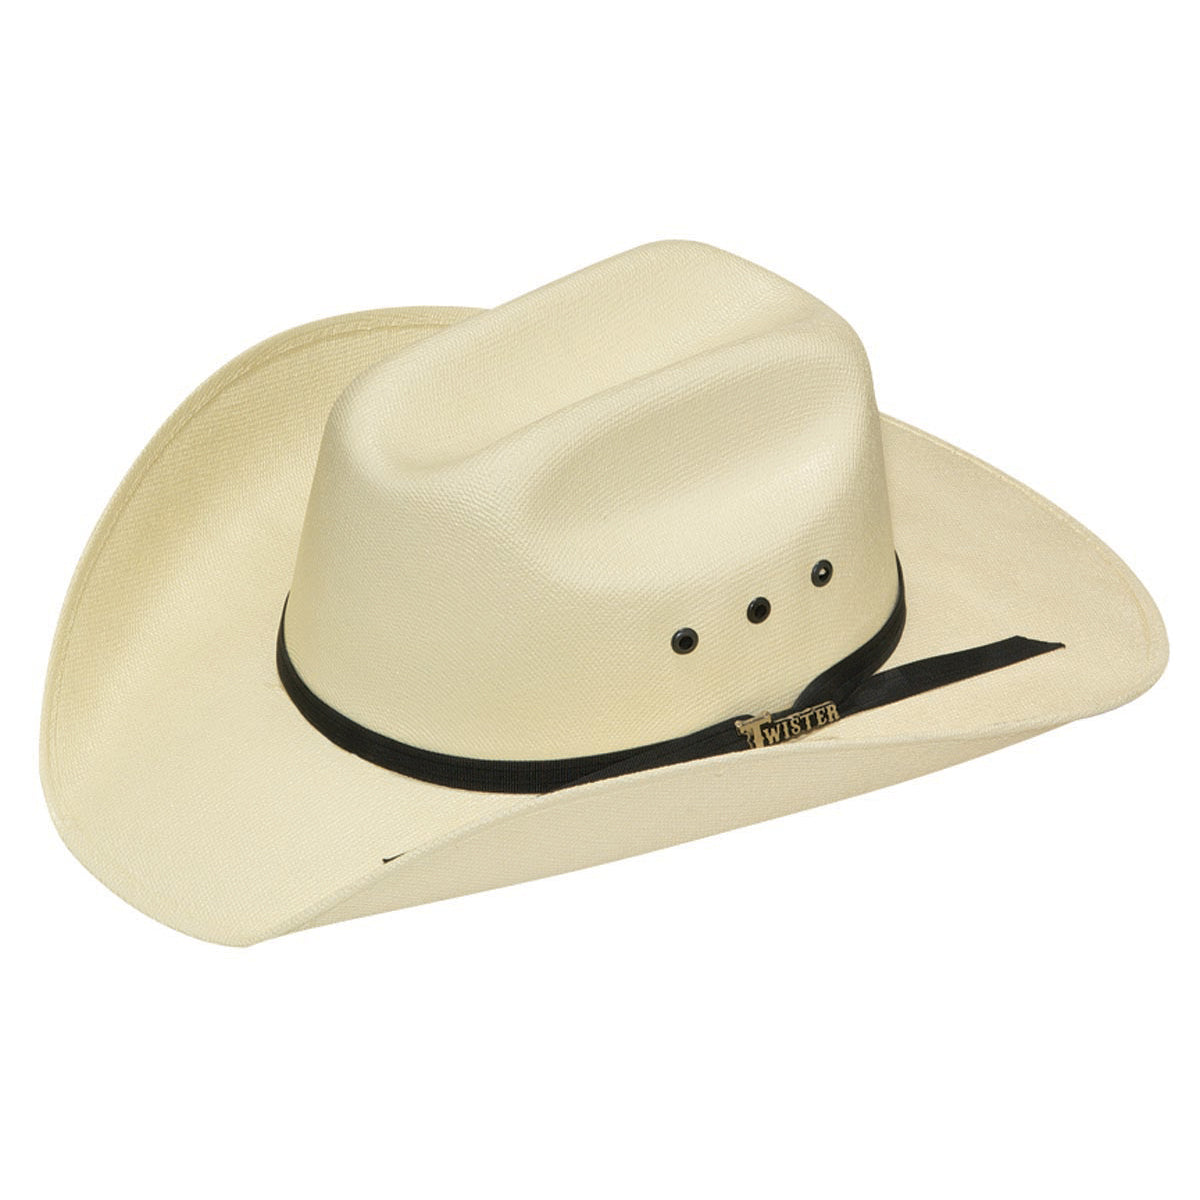 M & F Western Infant-Toddler Twister Straw Cowboy Hat - Natural